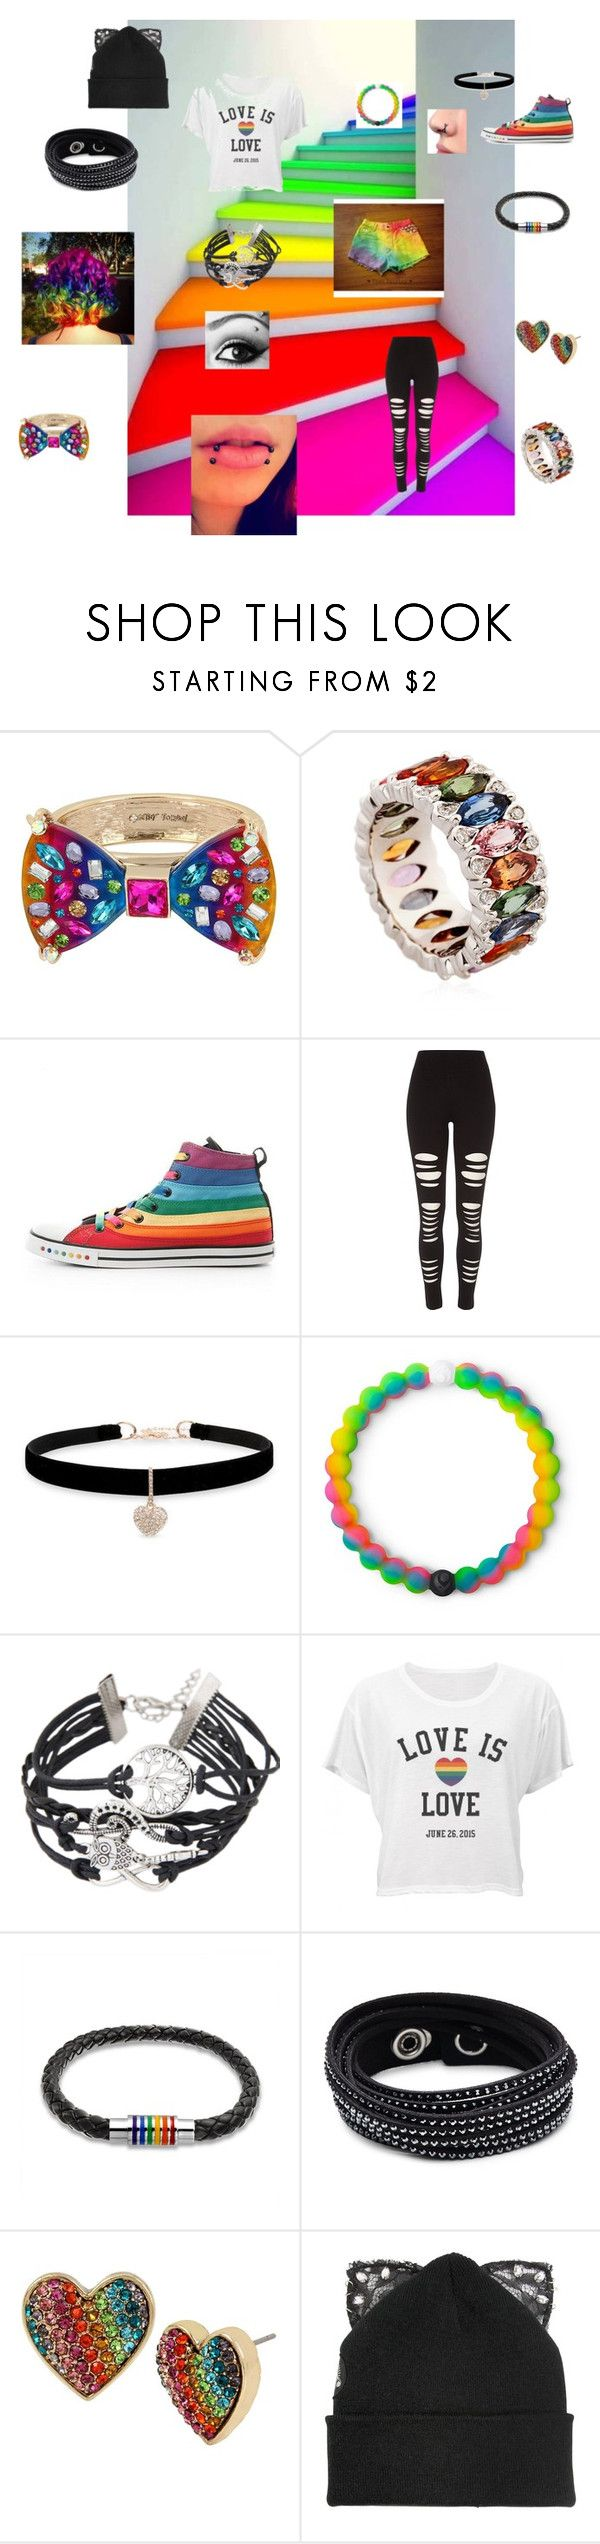 """""""Gay Pride"""" by bvbarmy04 ❤ liked on Polyvore featuring Betsey Johnson, Niquesa, River Island, Lokai, Bling Jewelry, Swarovski and Silver Spoon Attire"""